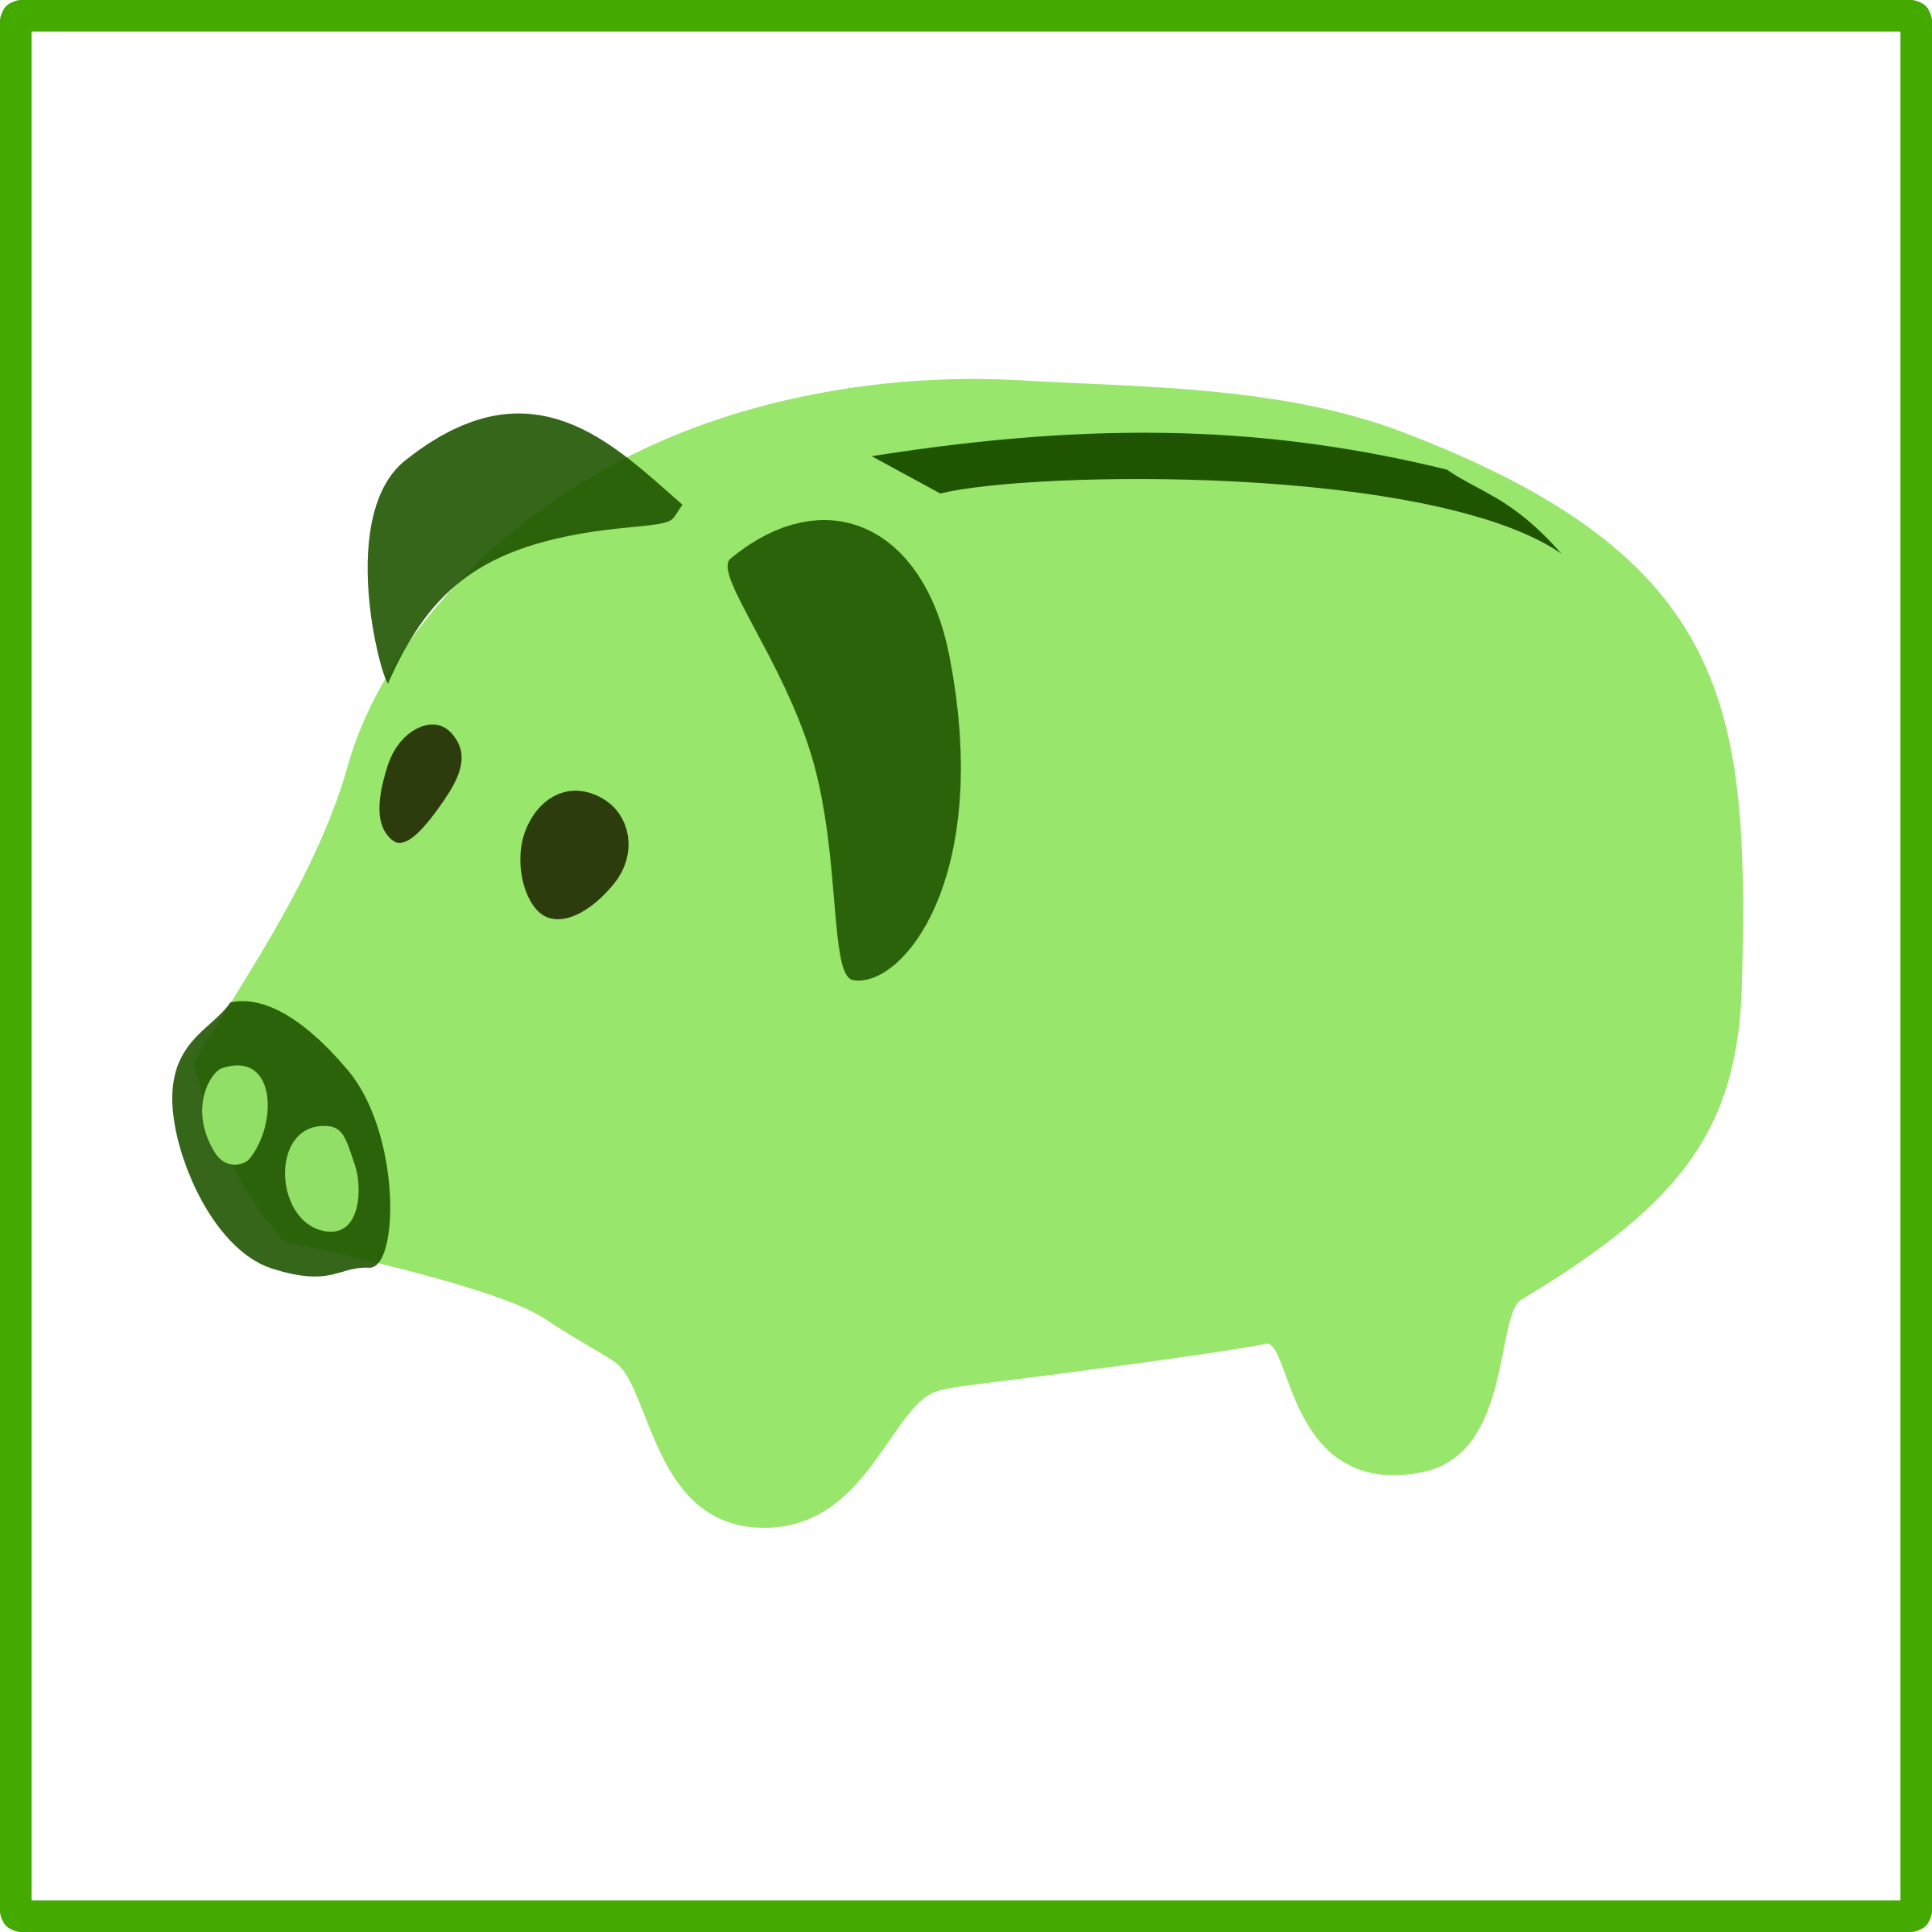 eco green economy icon by dominiquechappard